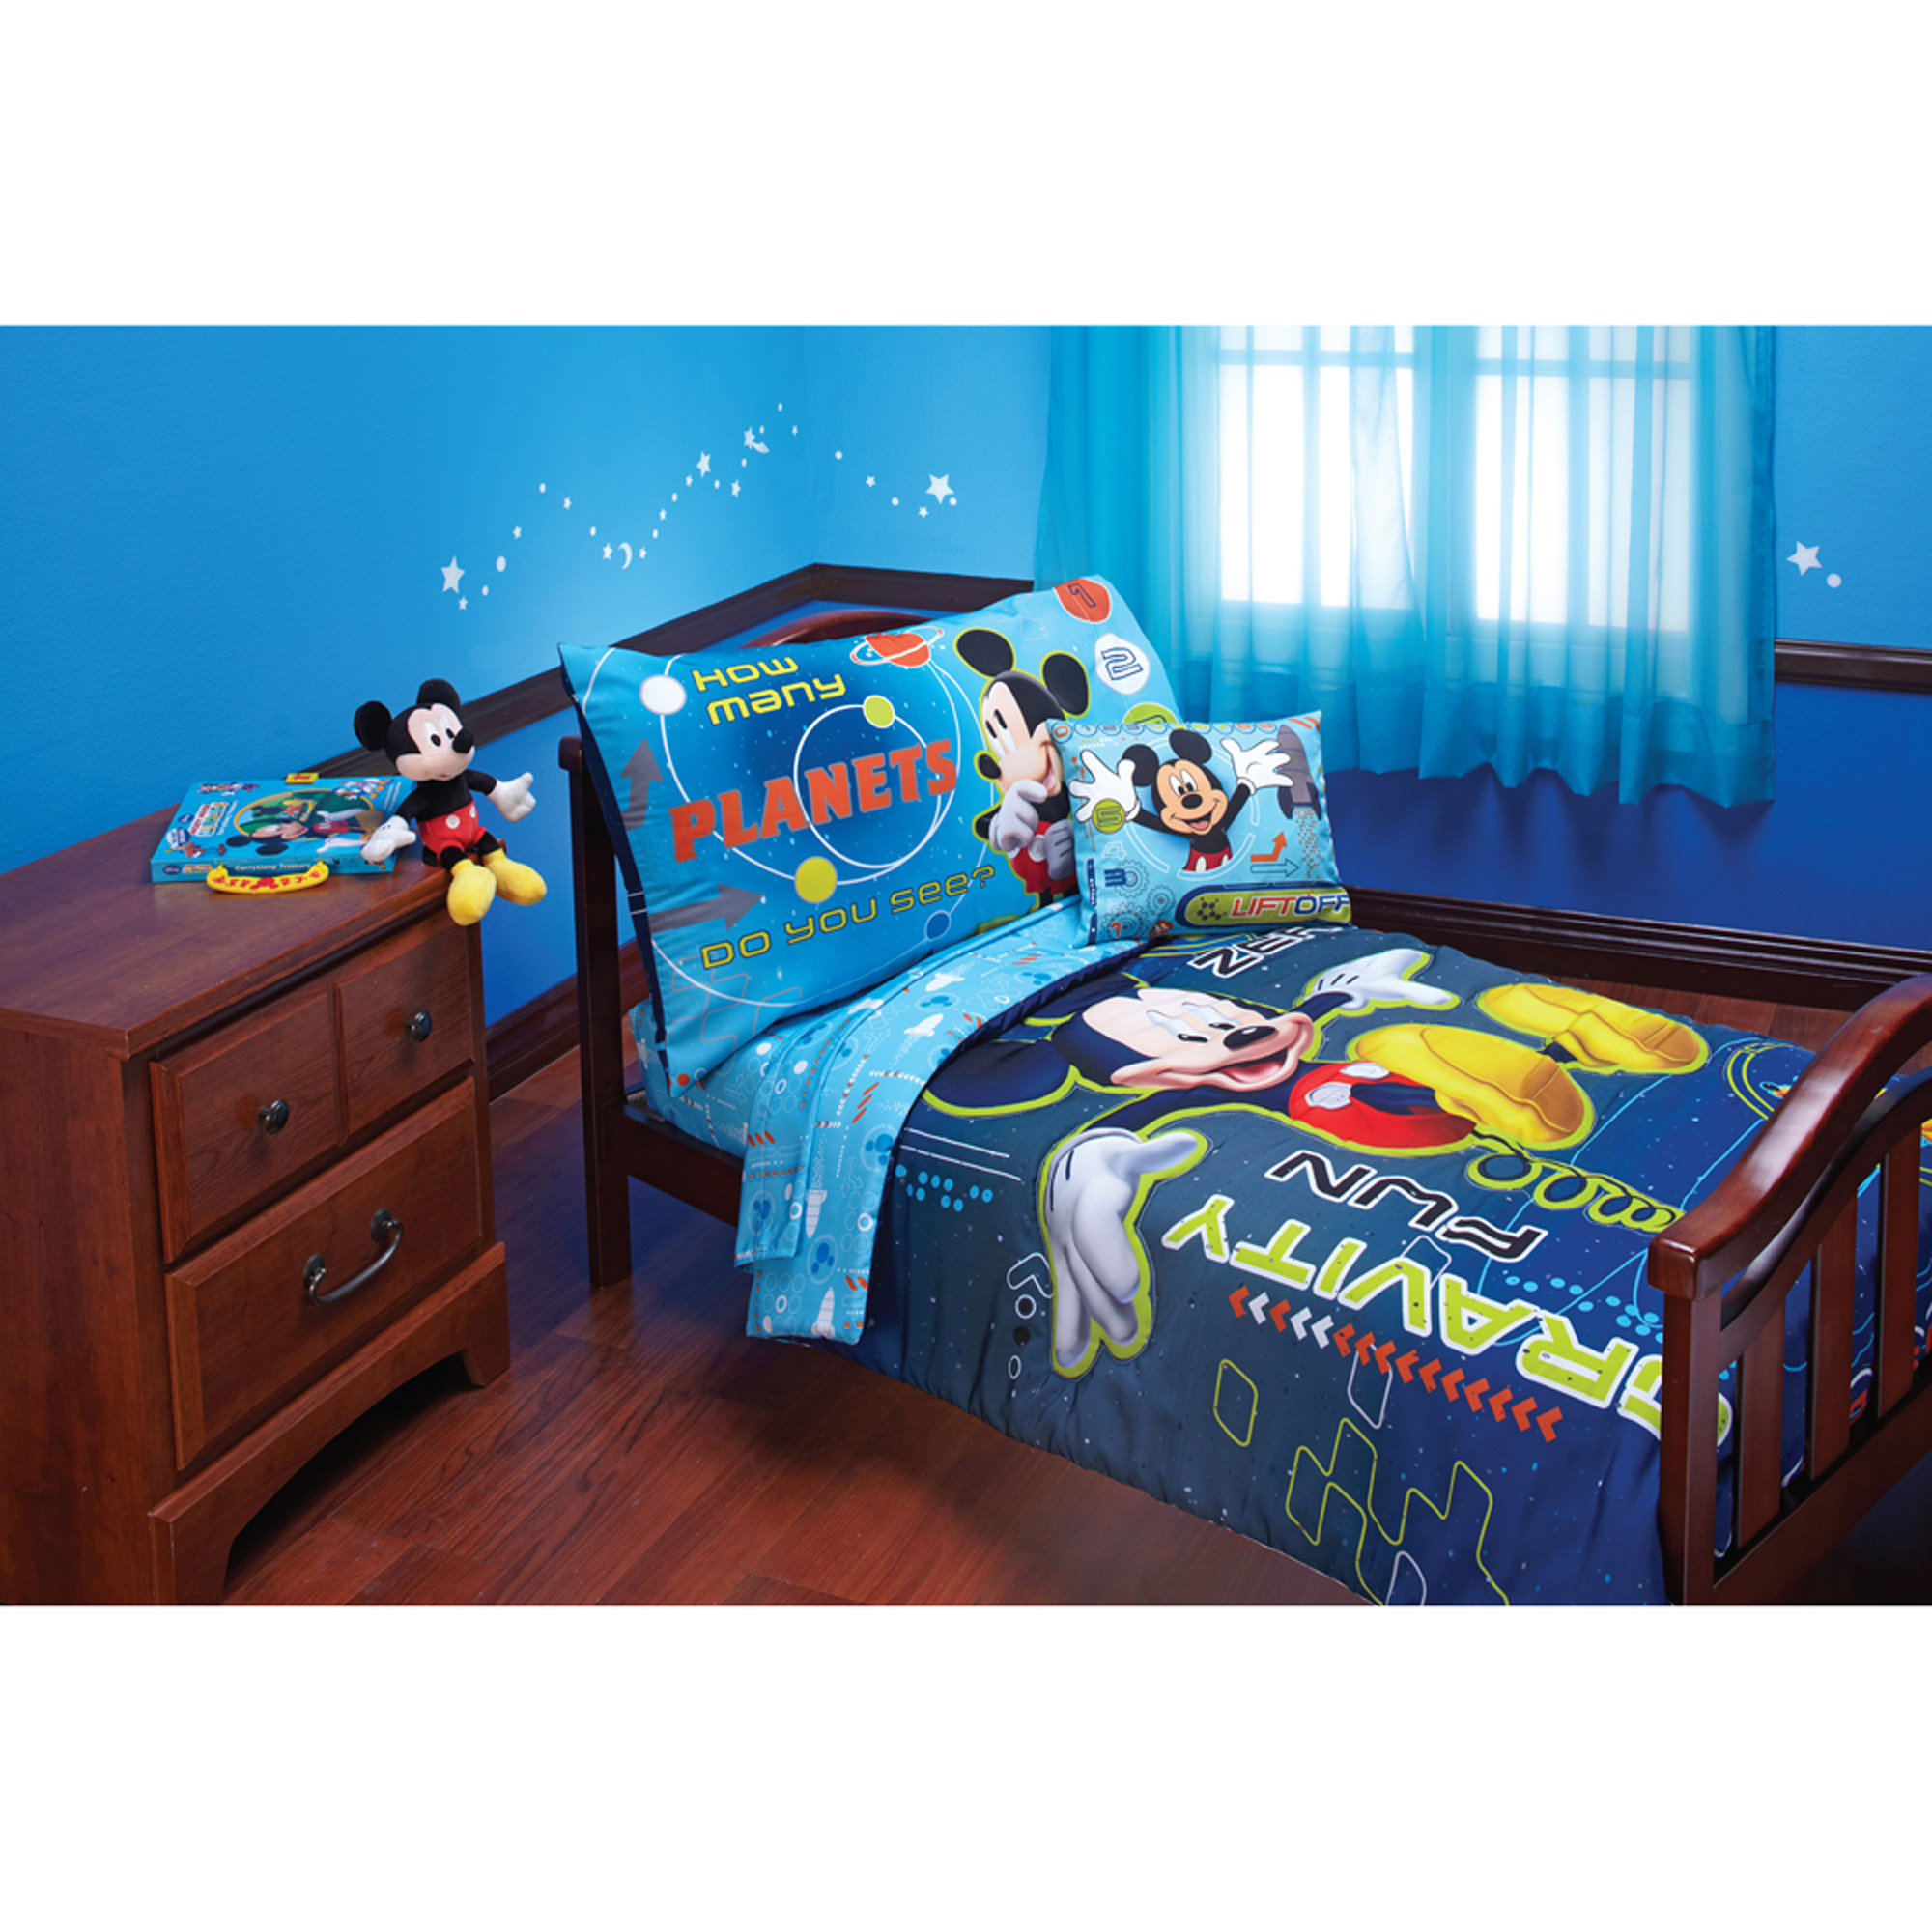 Bubble Guppies Bedding for Your Boy or Girl Bubble Guppies Fans: Bubble Guppies Bedding | Bubble Guppies Bedding | Monster Truck Sheets